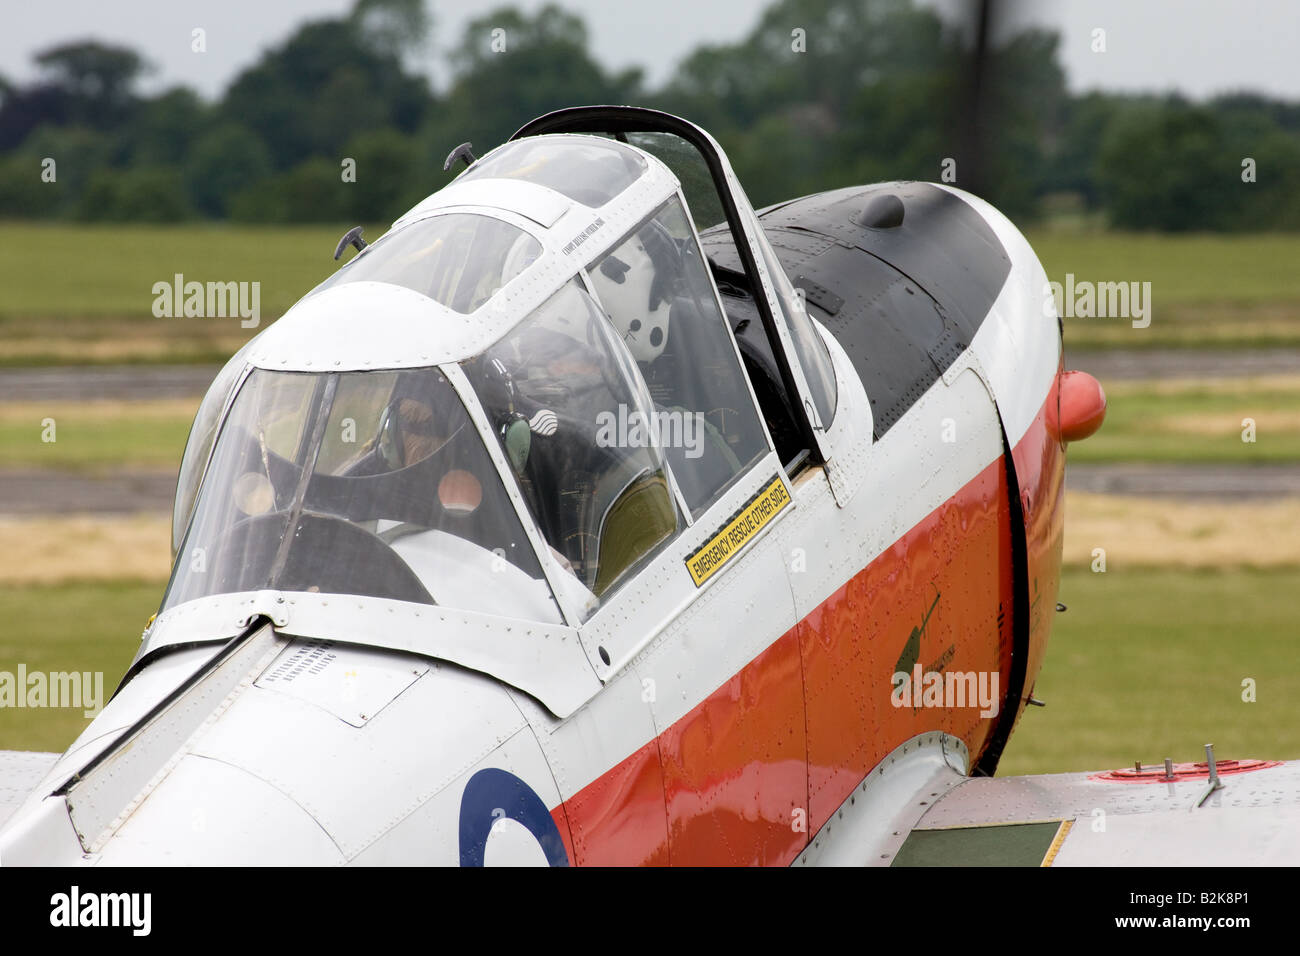 DeHavilland (Canada) DHC-1 Chipmunk 22 T10 WD390 68 G-BW*** at Wickenby Airfield - Stock Image